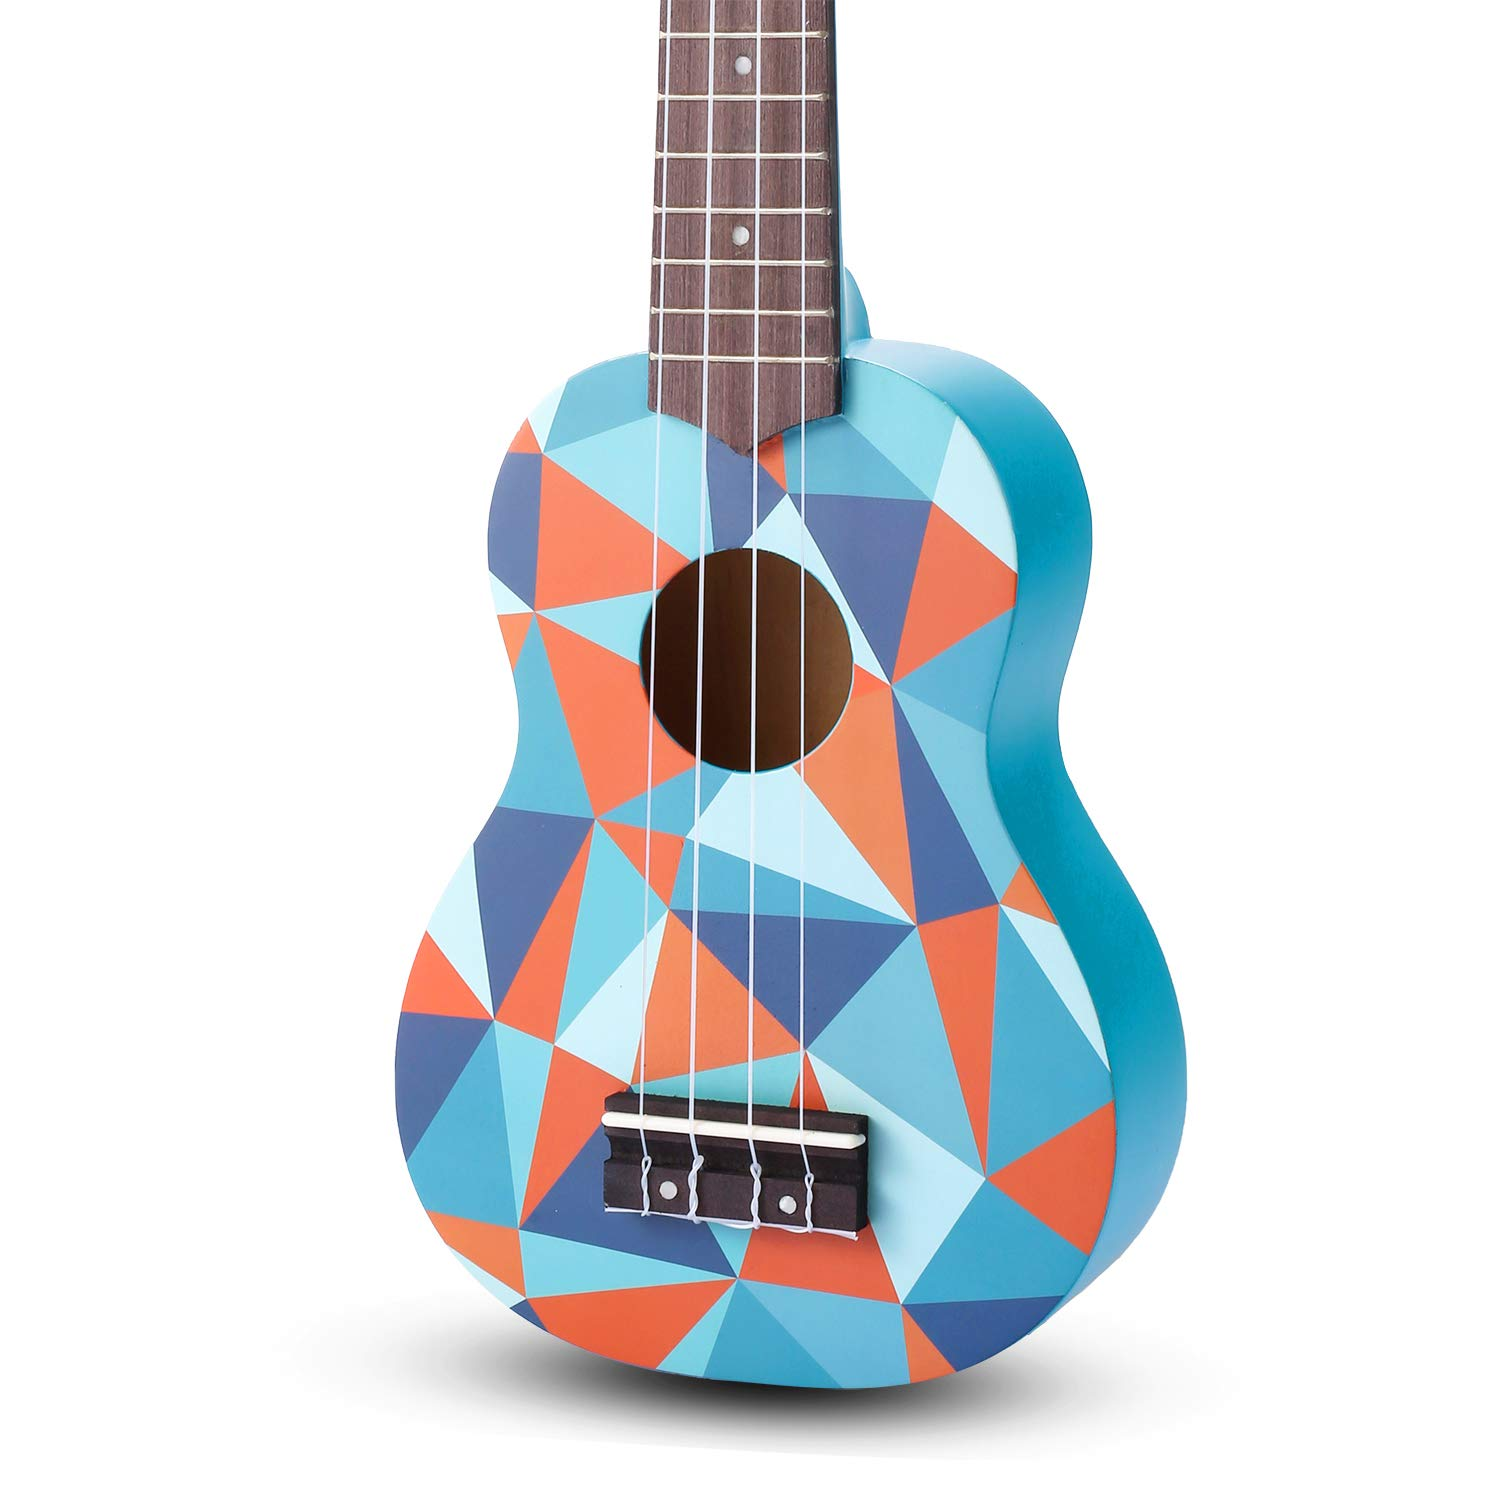 SanDona AK60B Soprano Basswood Ukulele,Children Musical Instruments, 21 Inch with Gig Bag for Kids Students and Beginners, Blue Geometric